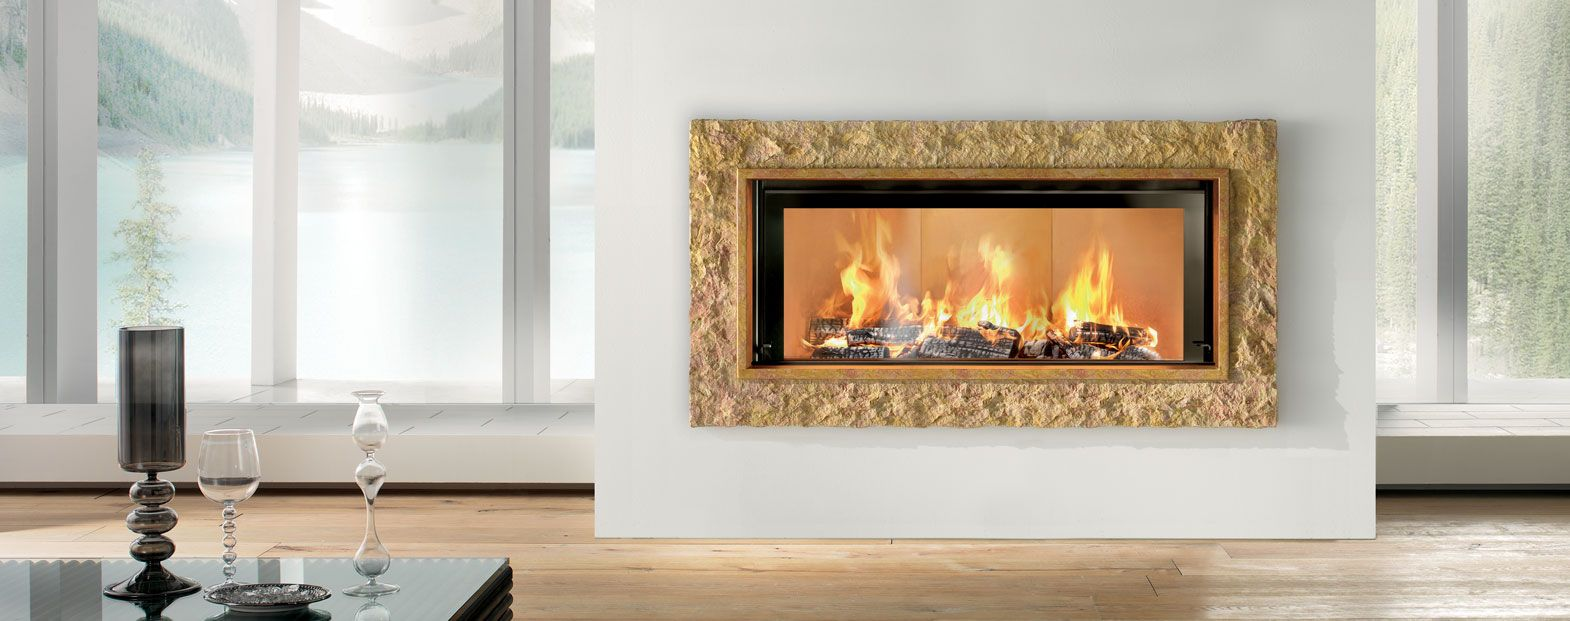 Interno Caminetti Montegrappa Fireplaces Heaters Stoves Inserts Caminetti Montegrappa